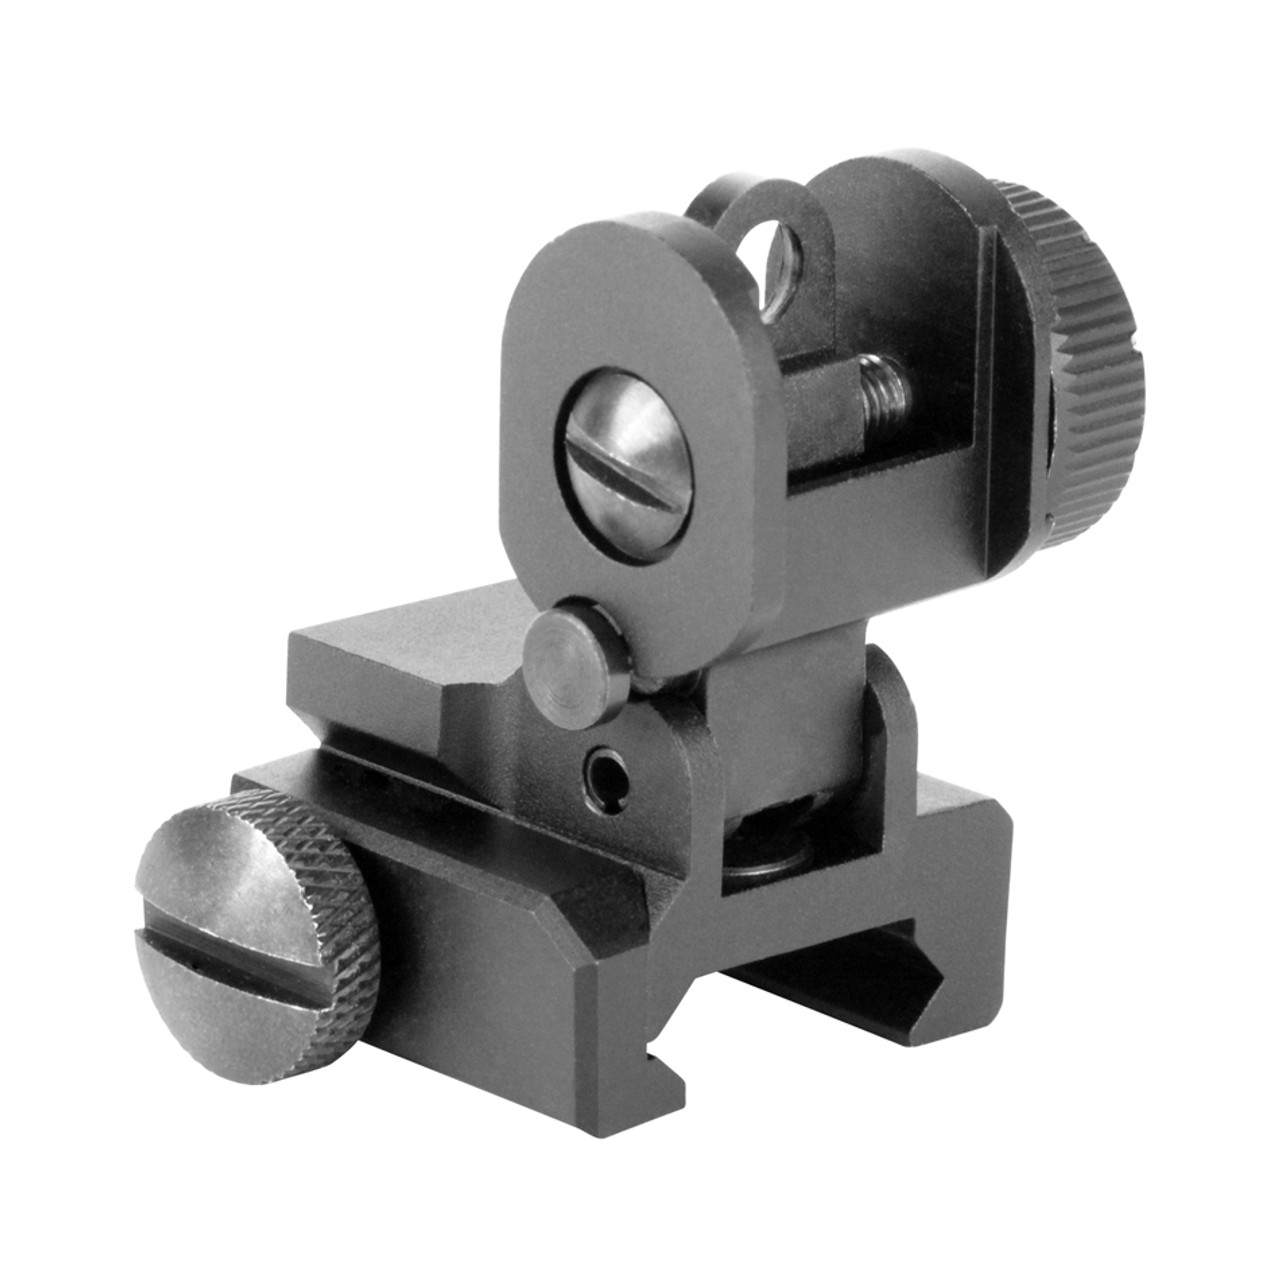 Low Profile Rear Flip Up Sight with A2 Dual Aperture /& locking for Rifles